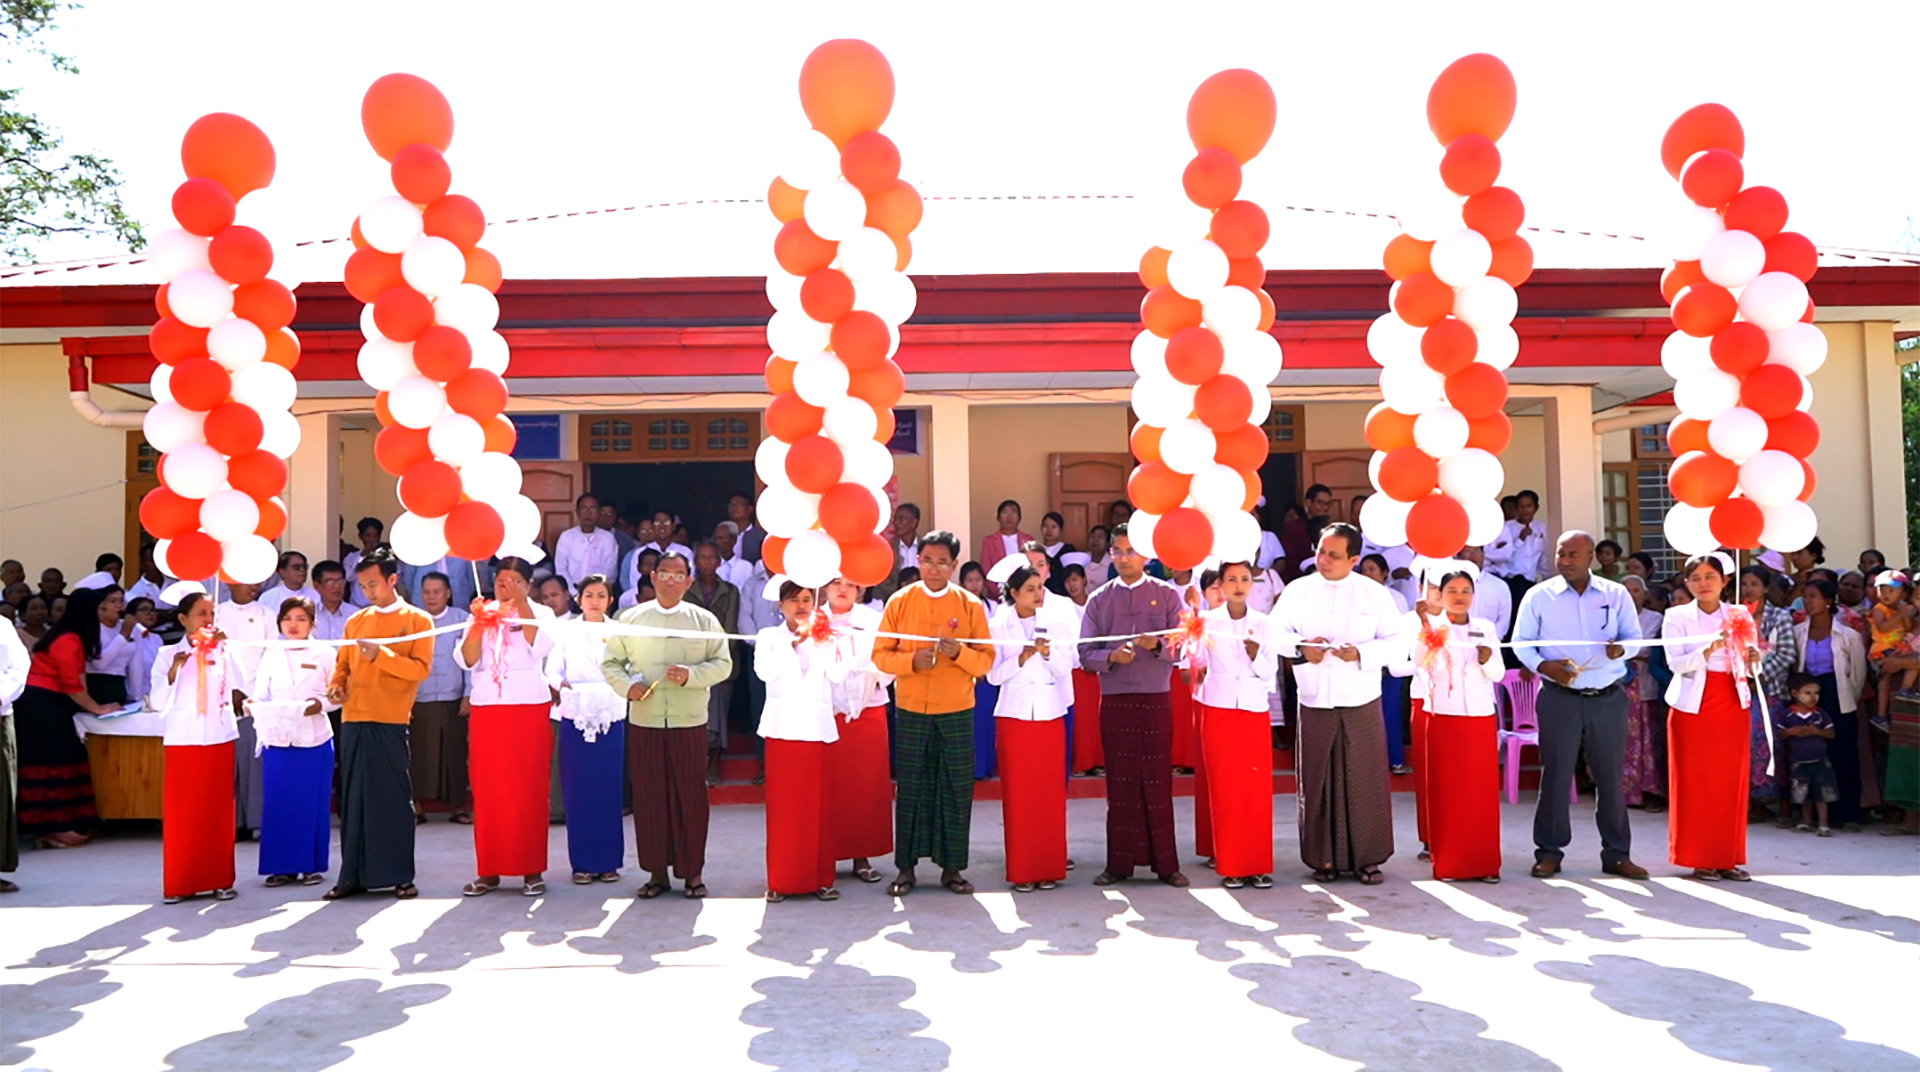 Ooredoo_Healthcare_Bulding_DweHla___Ribbon_Cutting.jpg